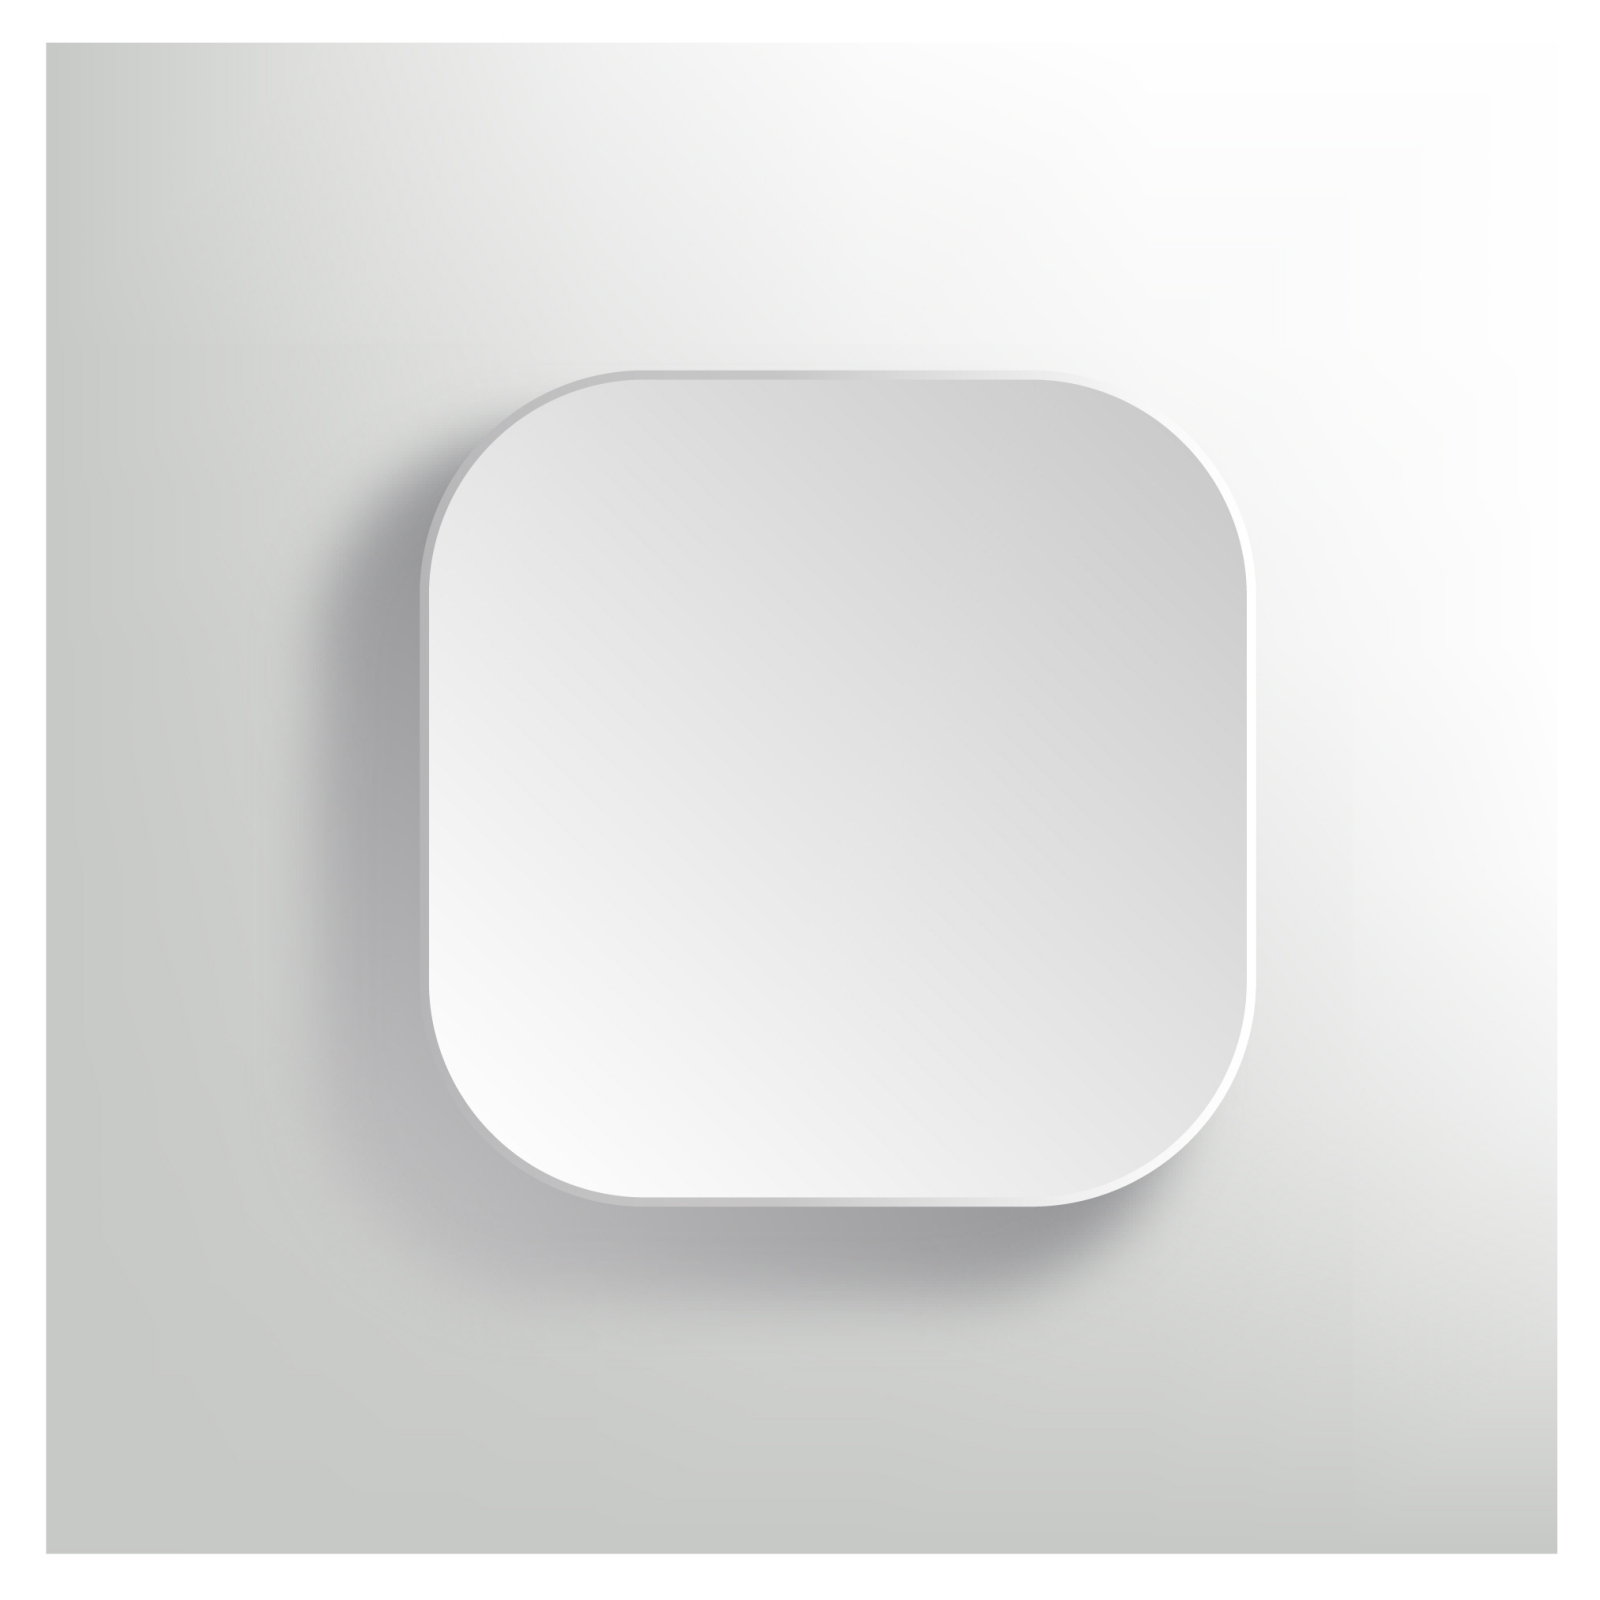 White App Icon Template Free